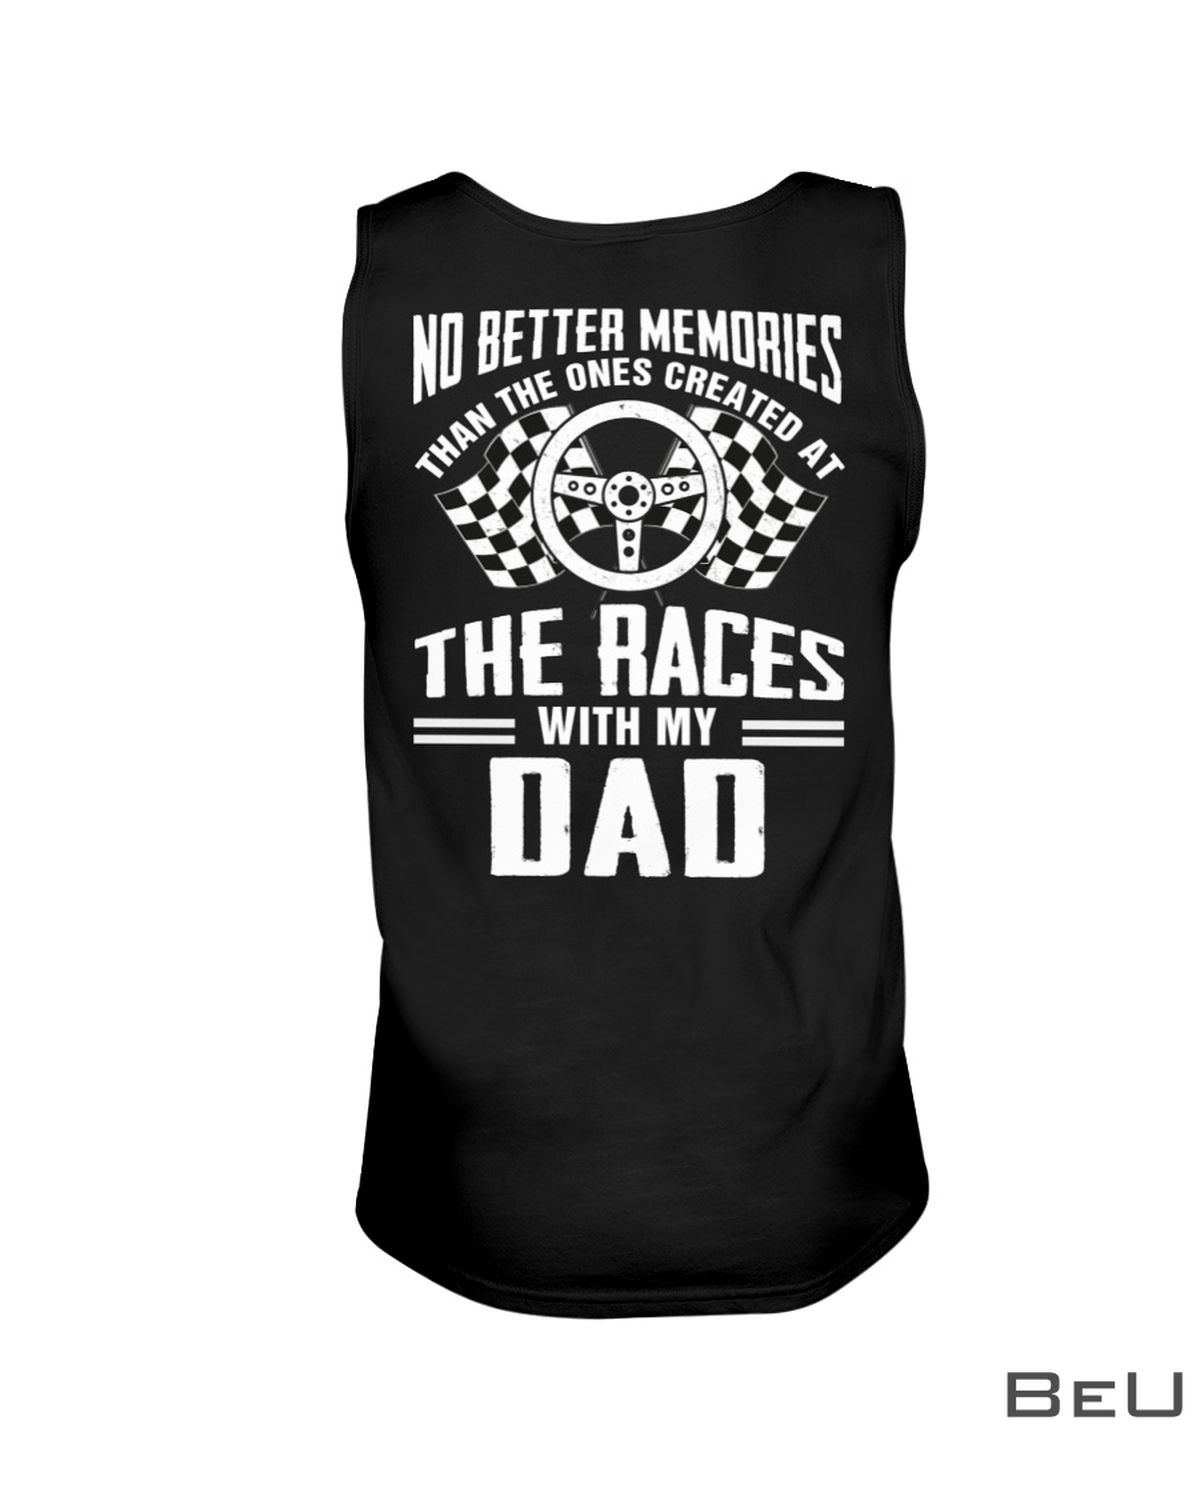 Stock Car Racing No Better Memories Than The Ones Created At The Races With My Dad Shirt c